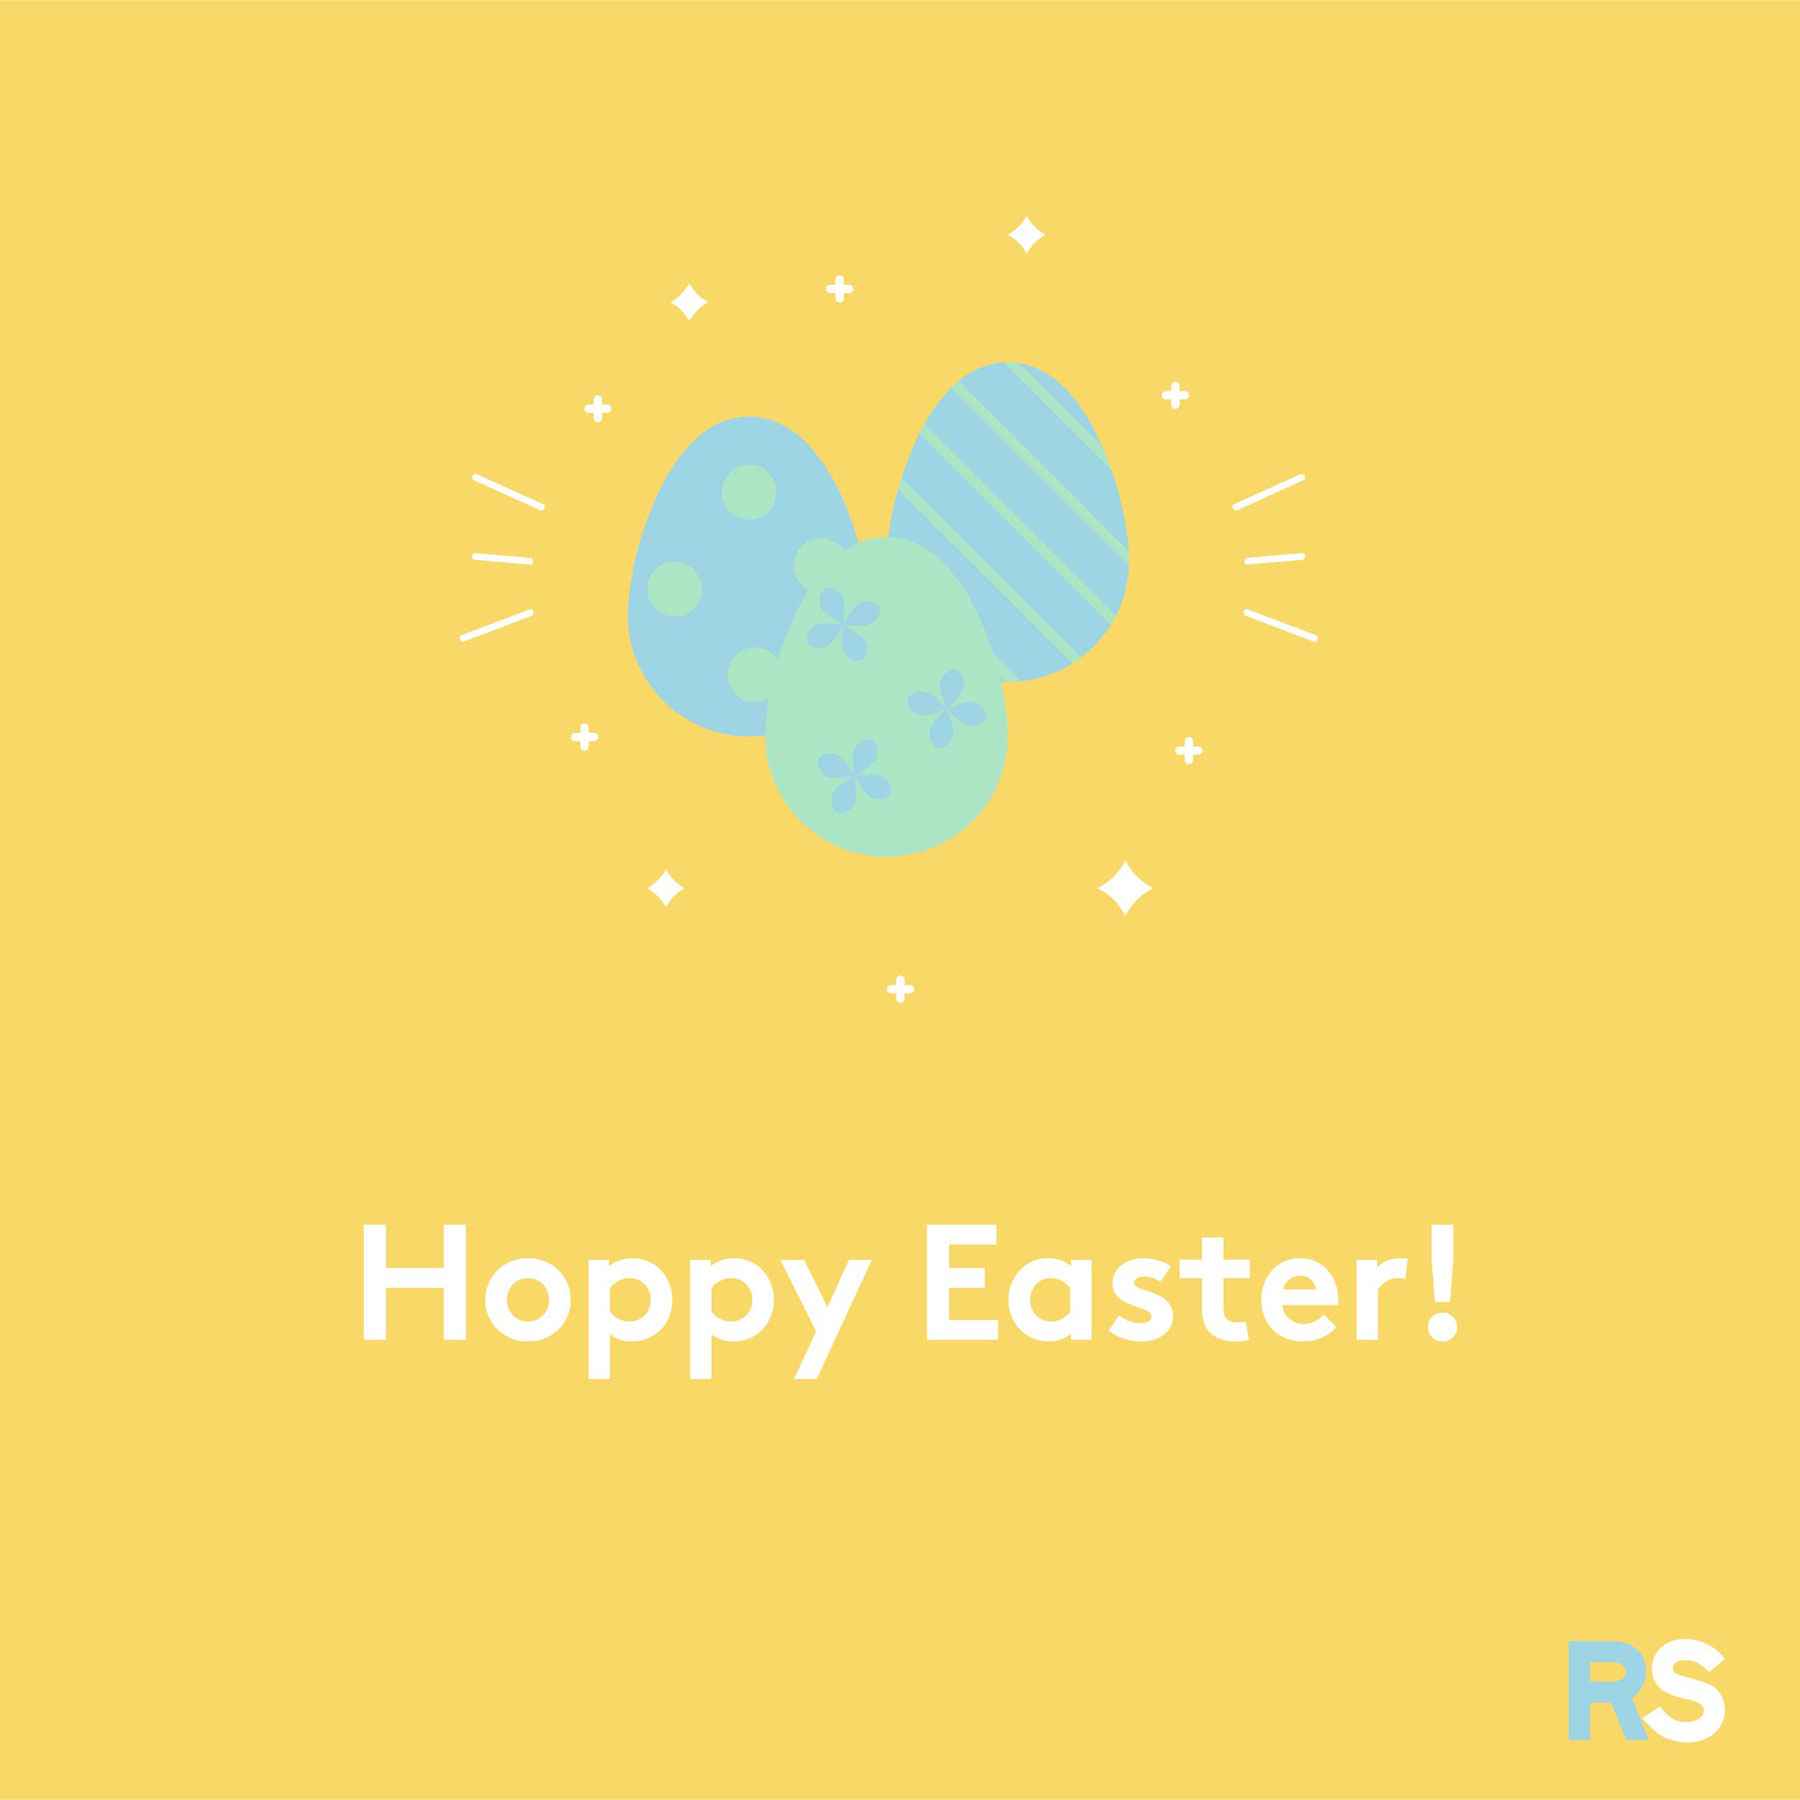 Easter quotes, captions, and messages - Hoppy Easter!